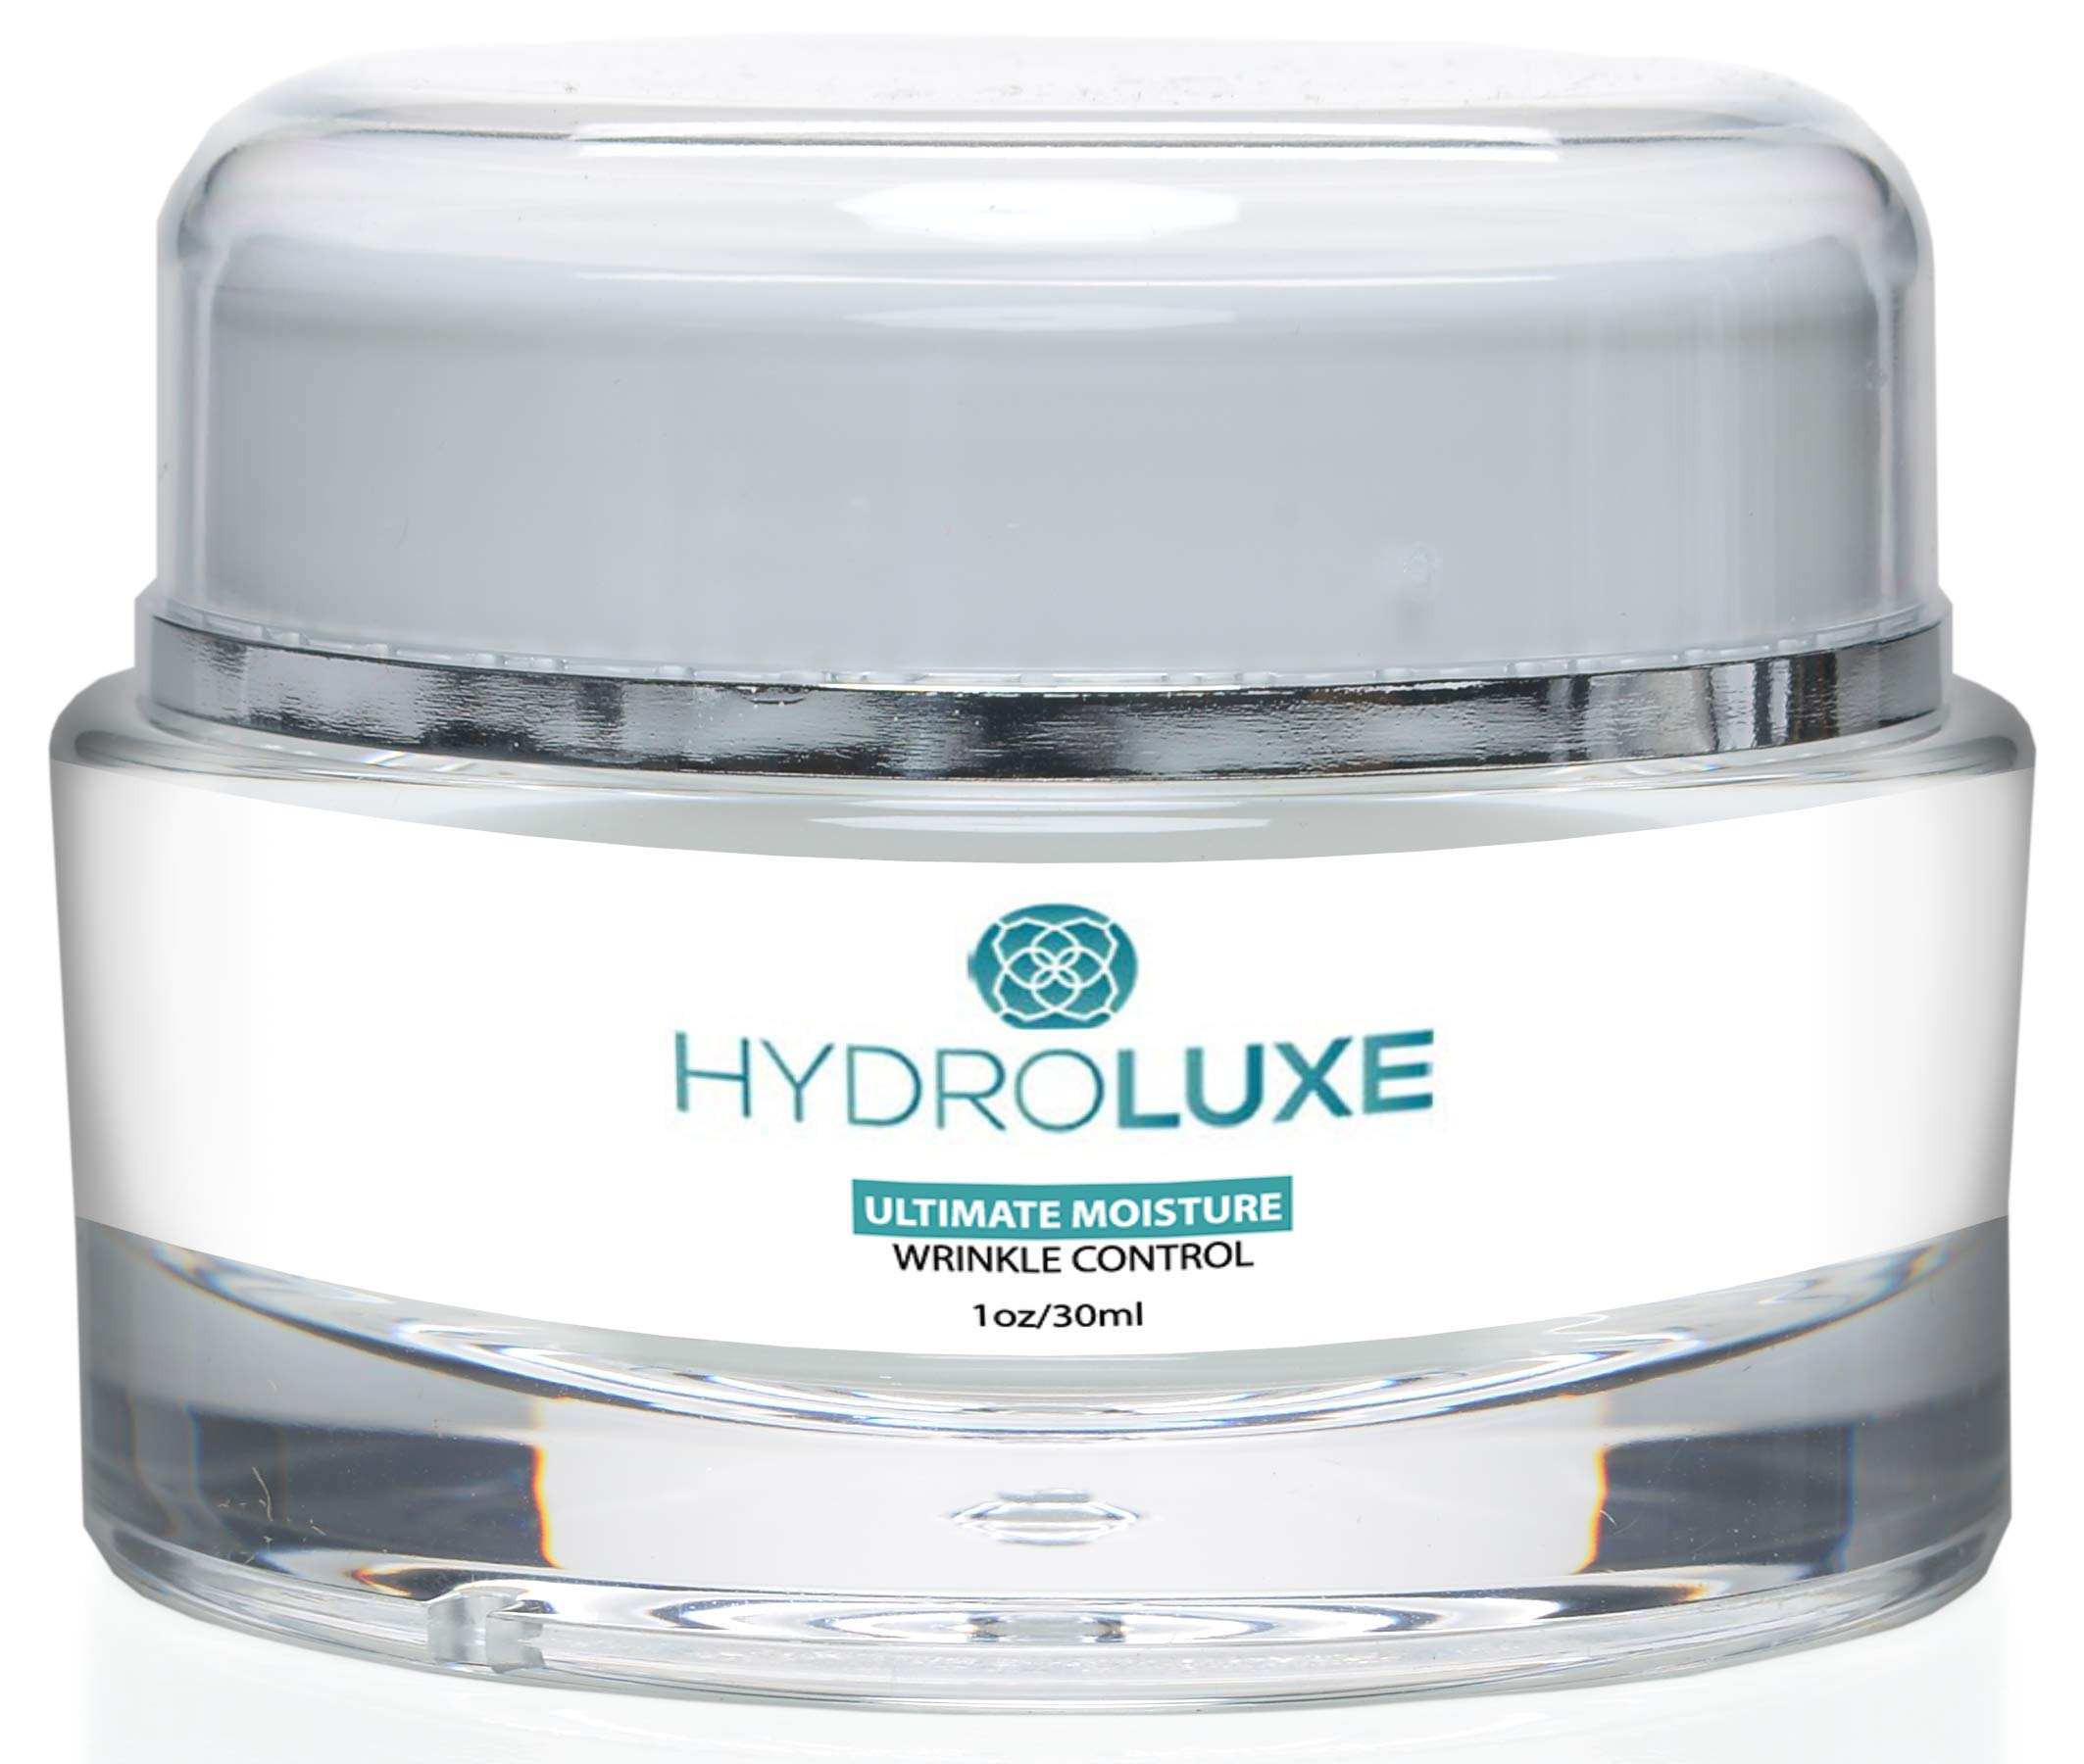 Hydroluxe Ultimate Moisture- Extreme Hydrating Day & Night Cream- Day and Night Ultimate Luxury Revitalizing Cream- Age Defying Spa Quality Formula- Designed to Deeply Hydrate-Even Complexion by Hydroluxe